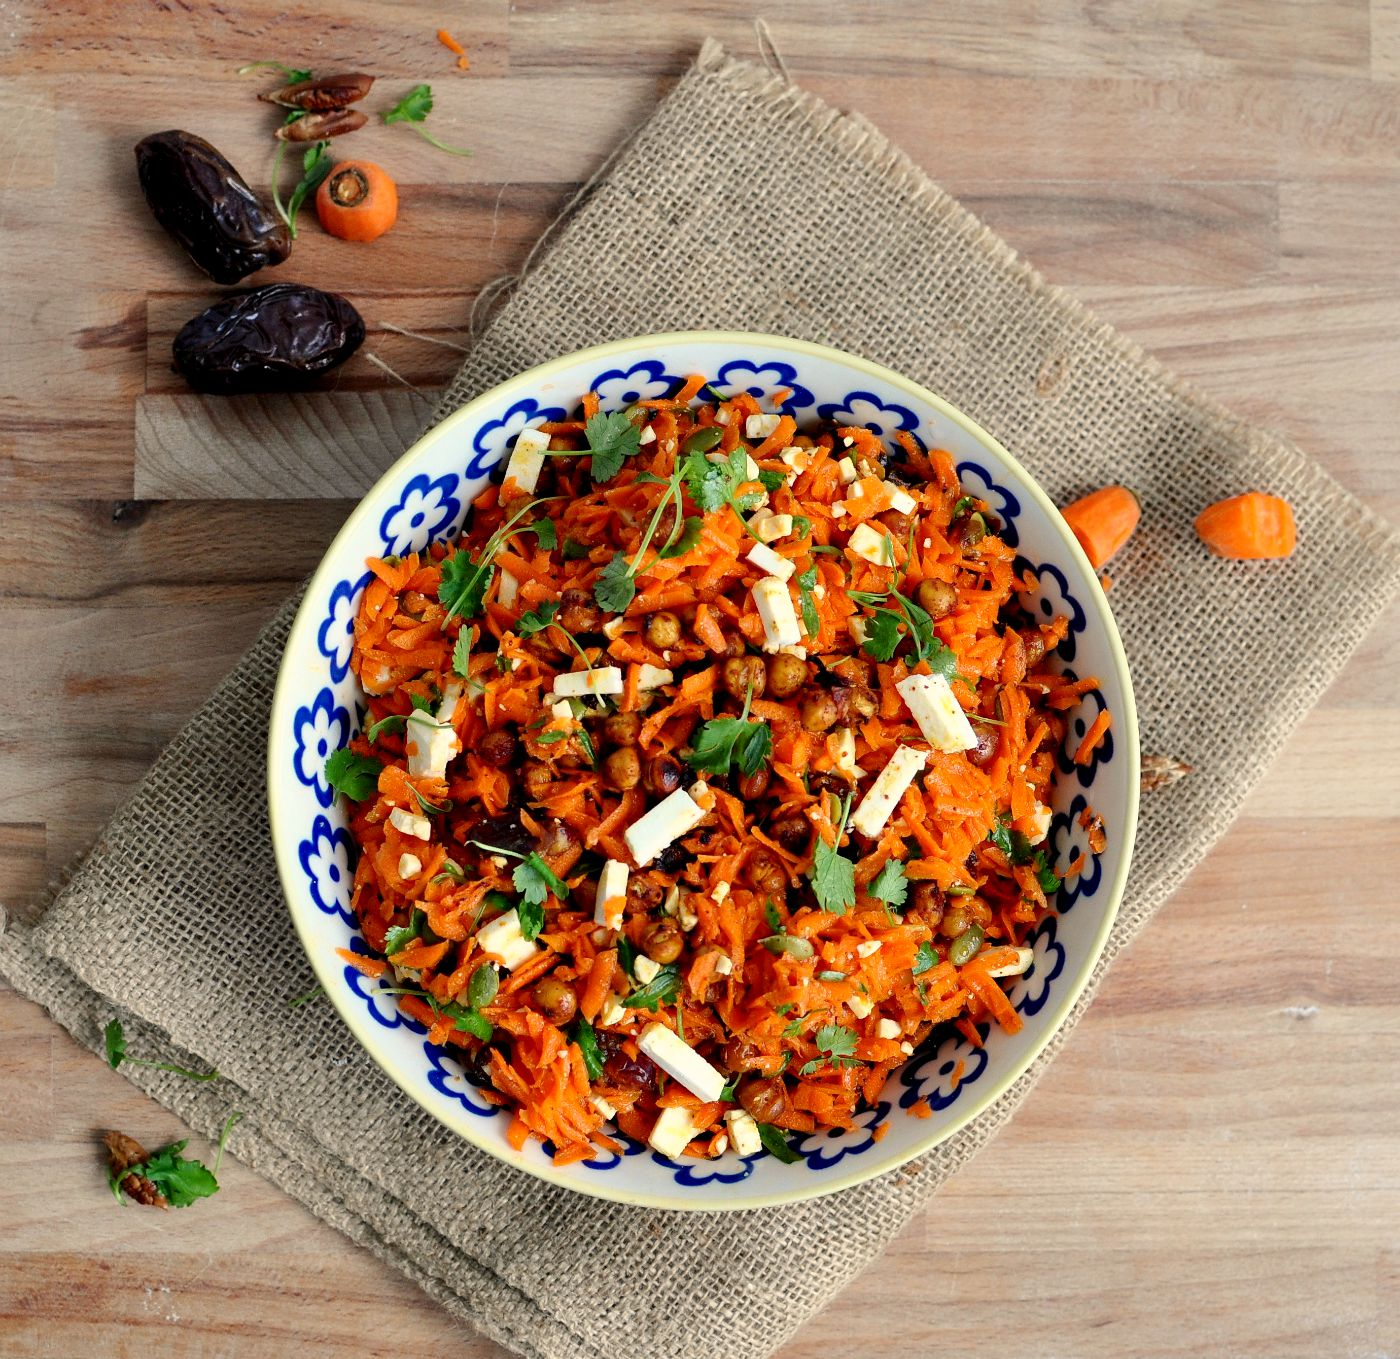 Shredded Carrot and Chickpea Salad Recipe | My Second Breakfast